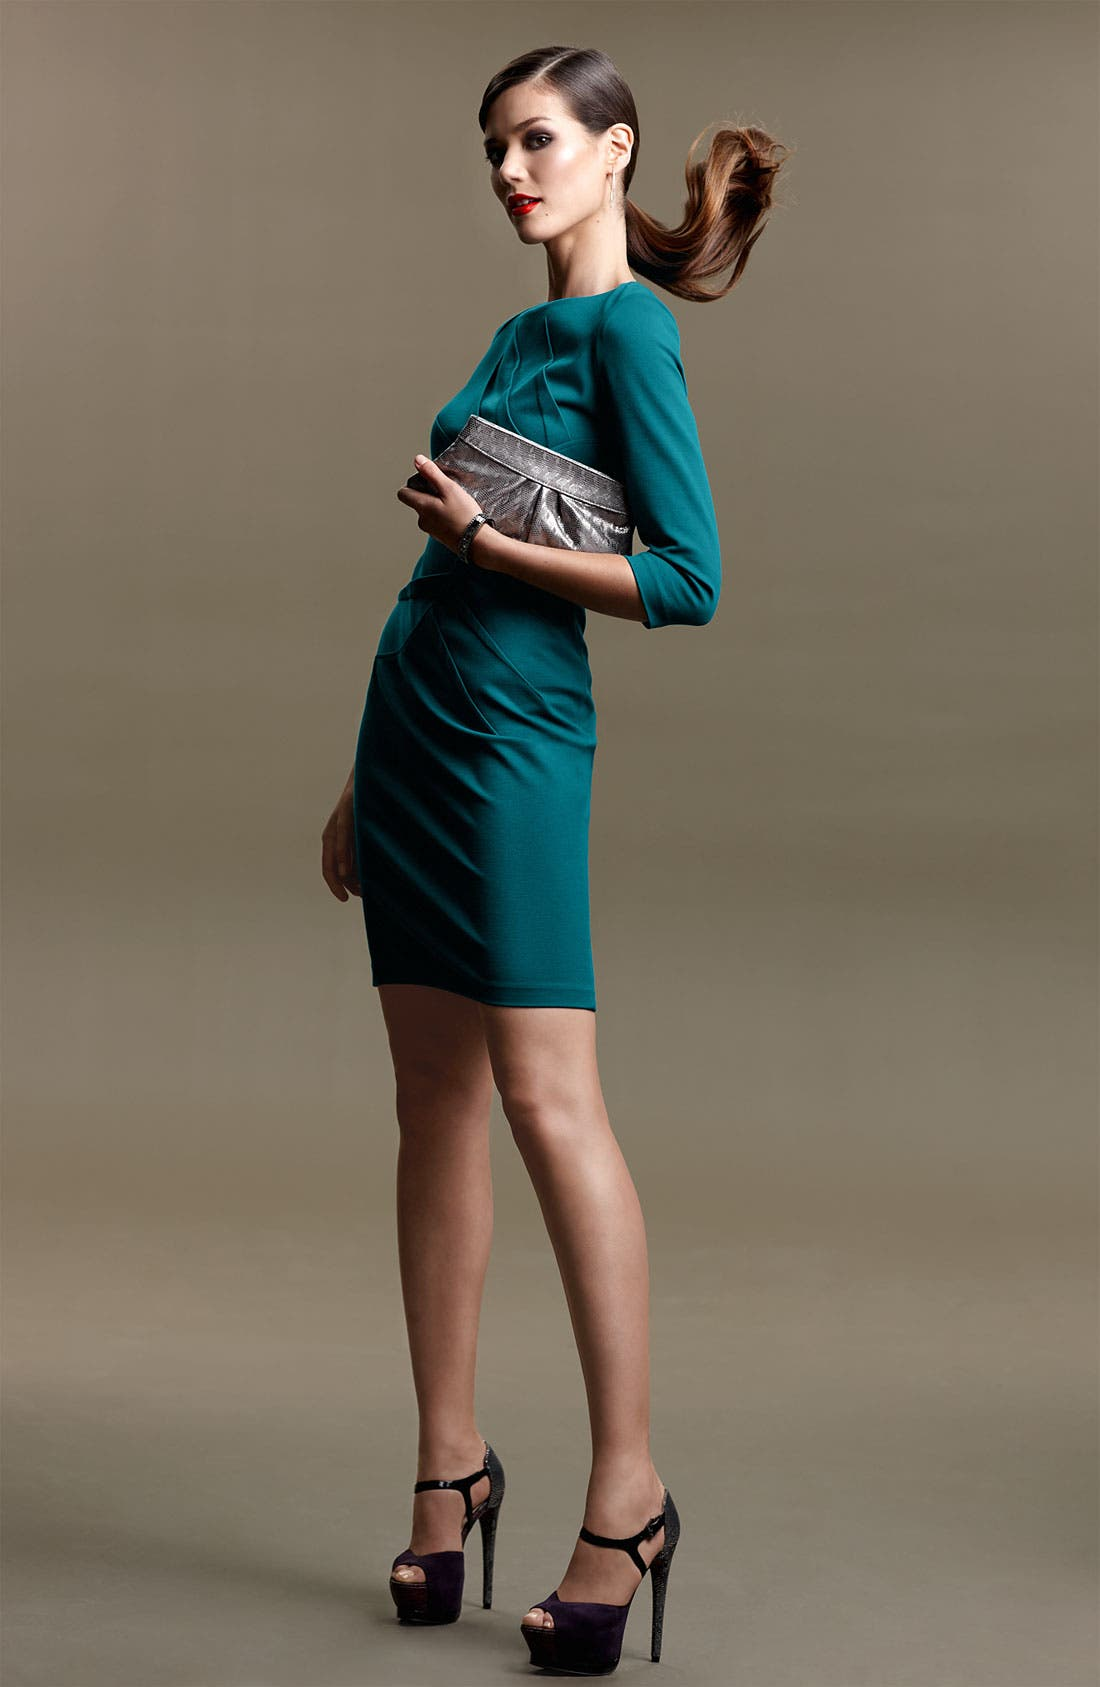 Main Image - Adrianna Papell Dress & Accessories